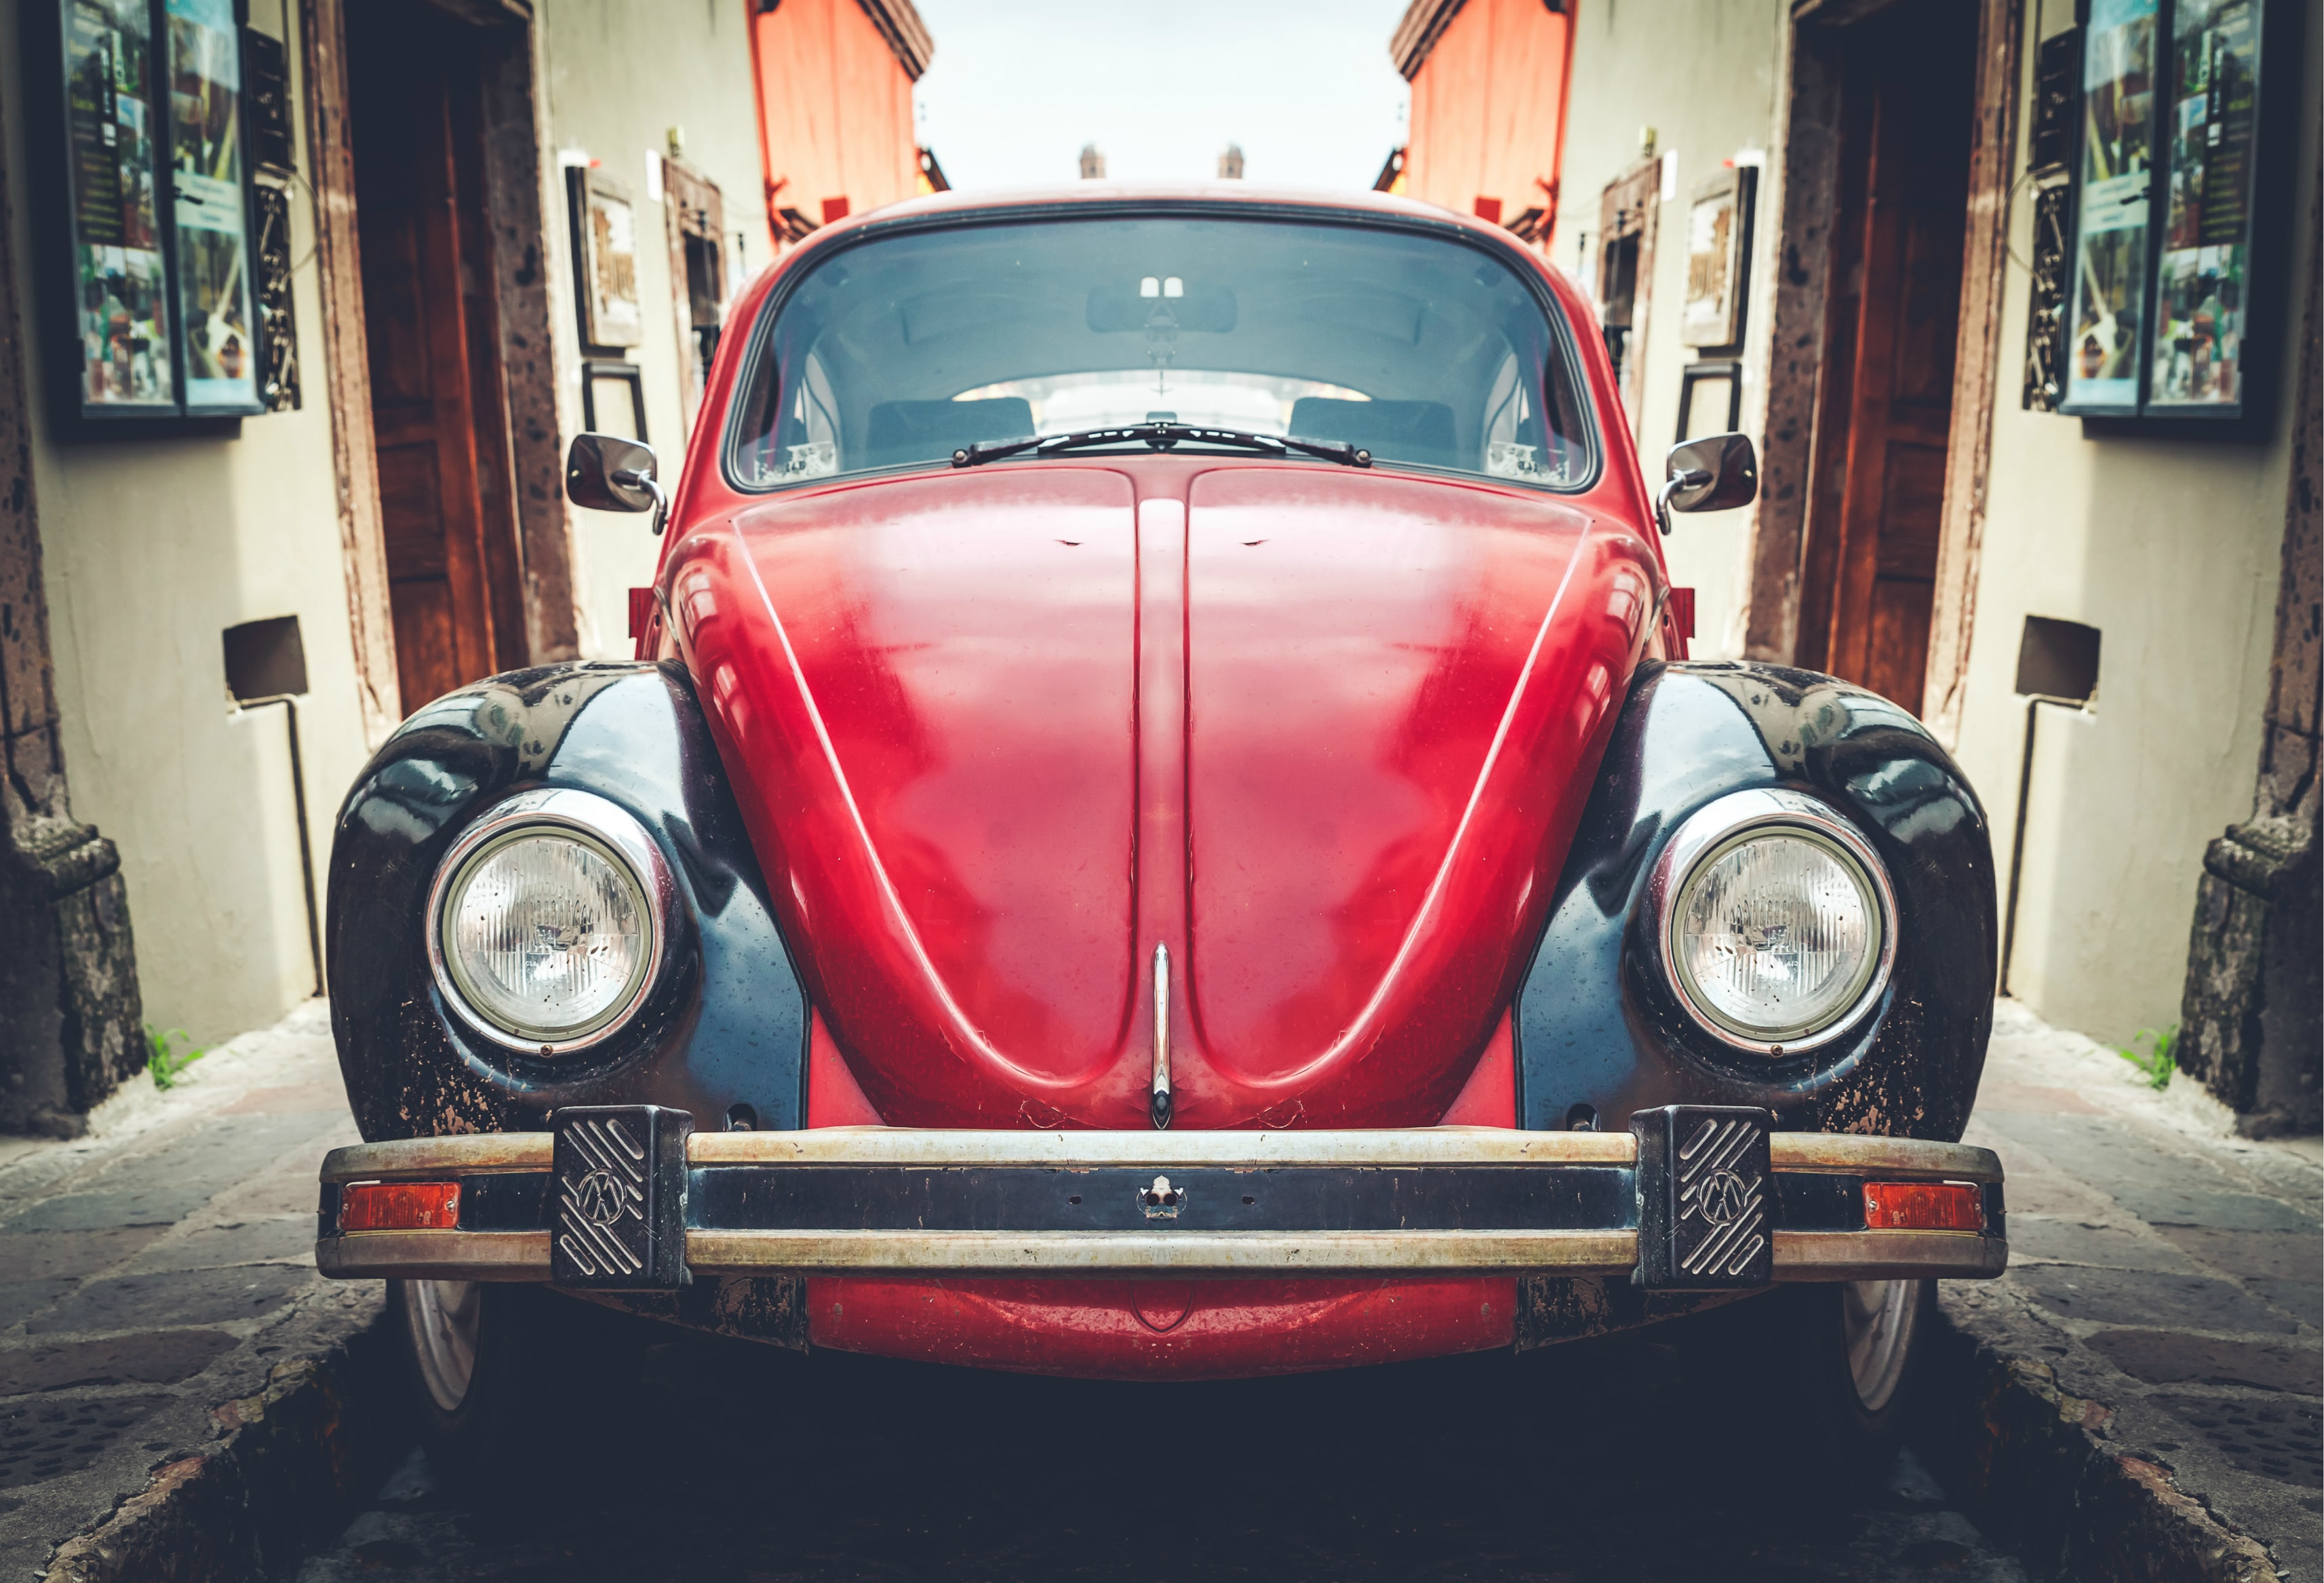 photo of red and black Volkswagen Beetle in alley